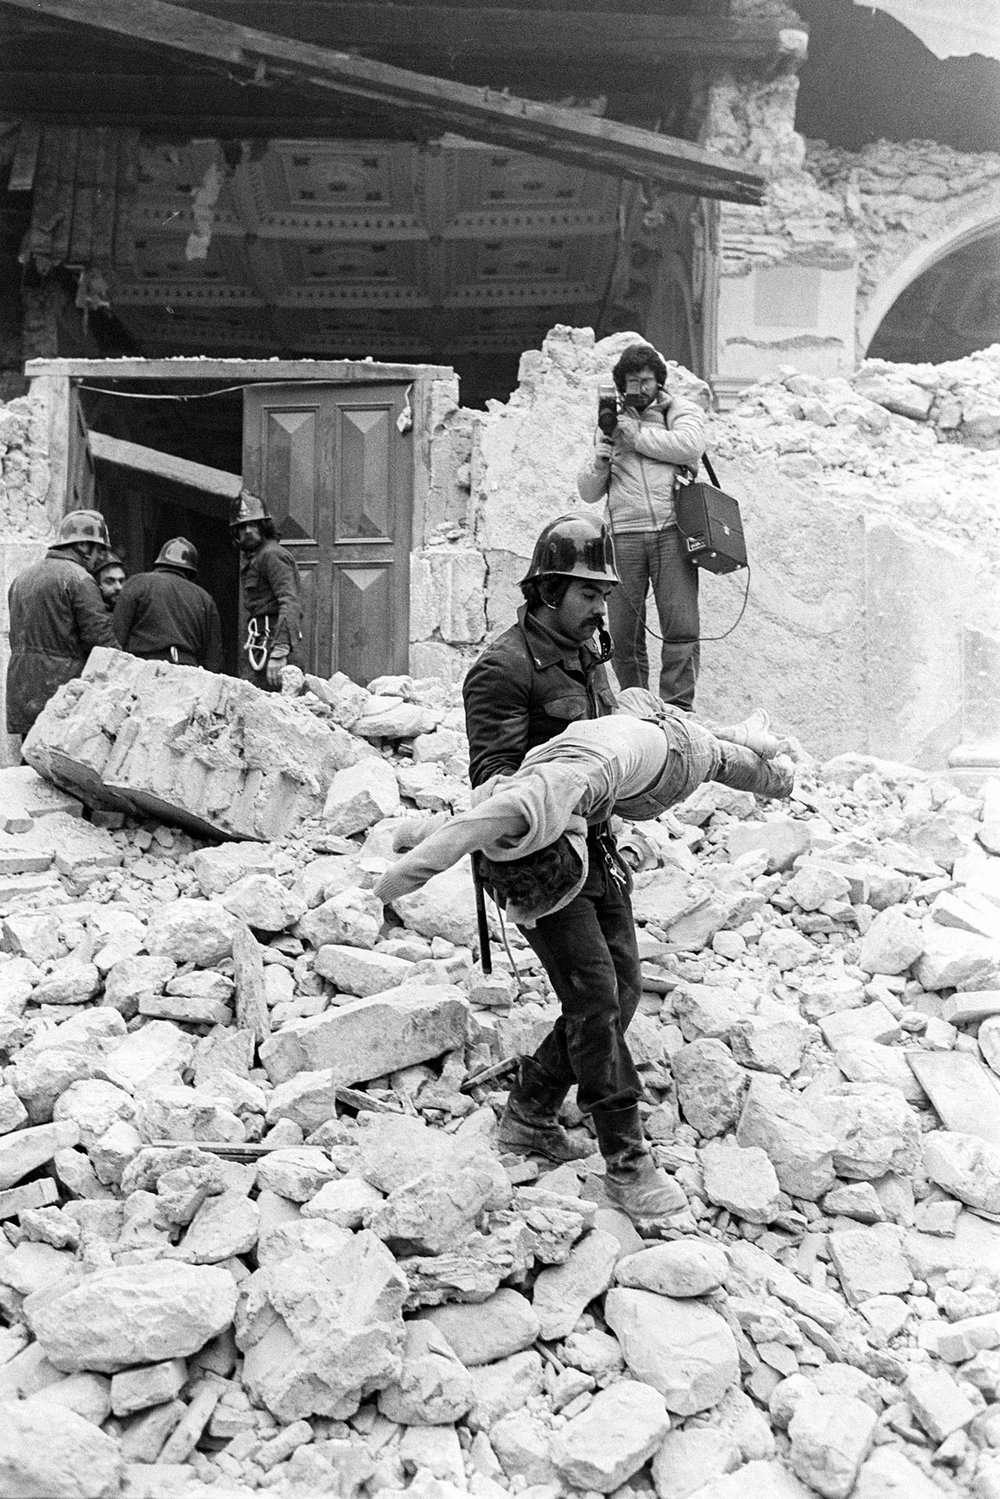 Basilicata, 24 November 1980